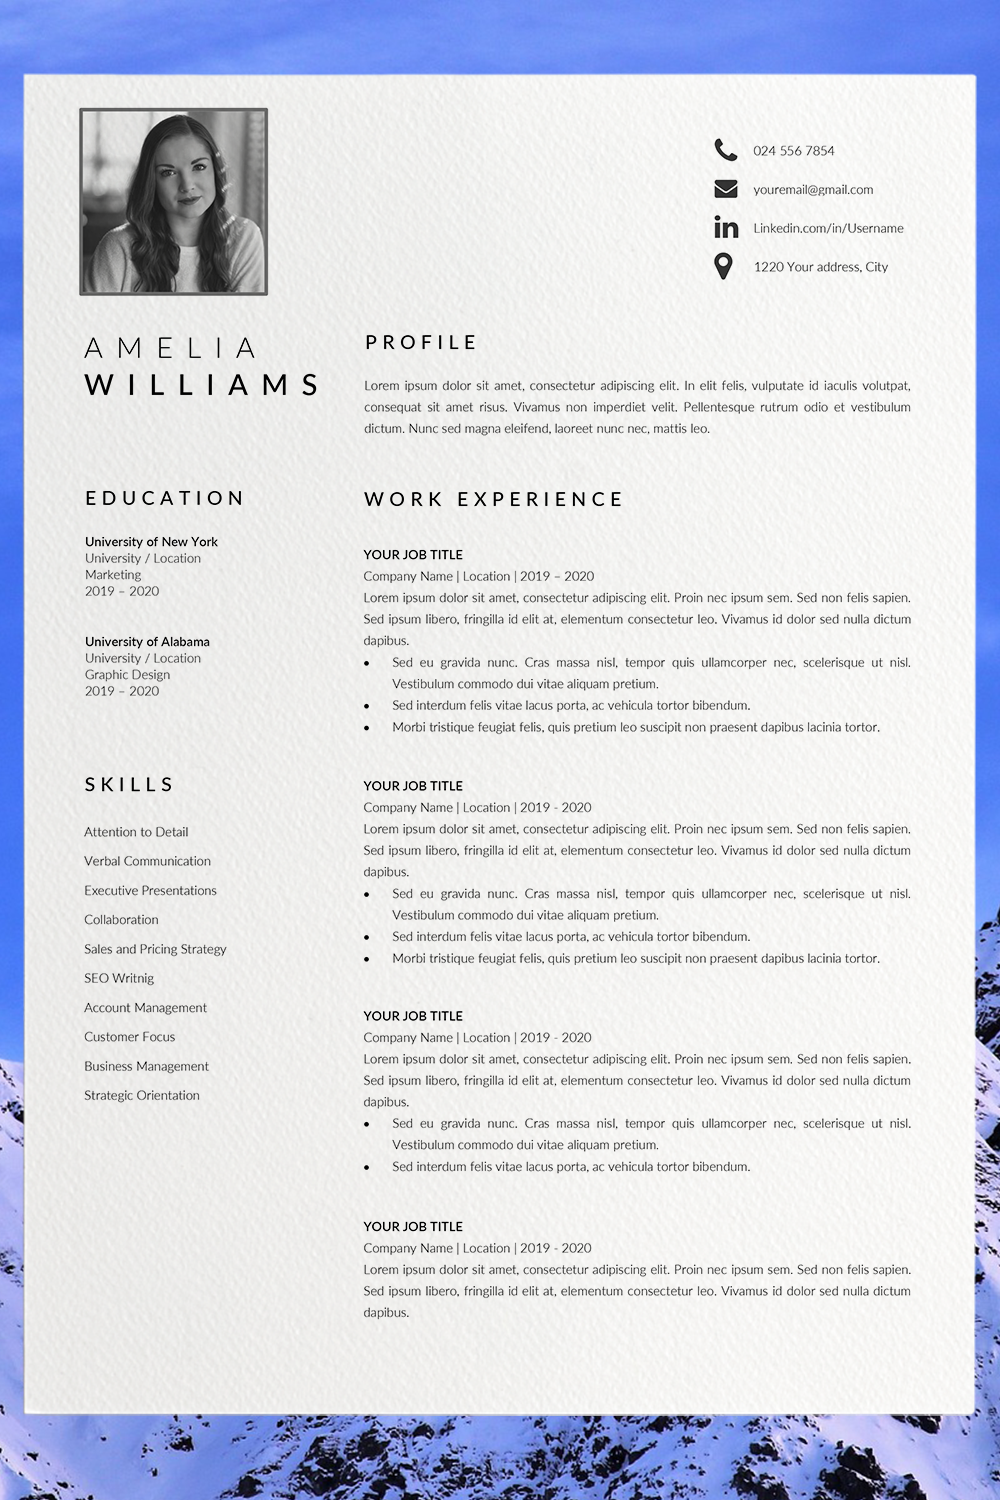 Resume Outline Template Cv Layout Template Creative Resume Builder Modern Cv Layout In 2020 Resume Template Word Unique Resume Template Modern Resume Template